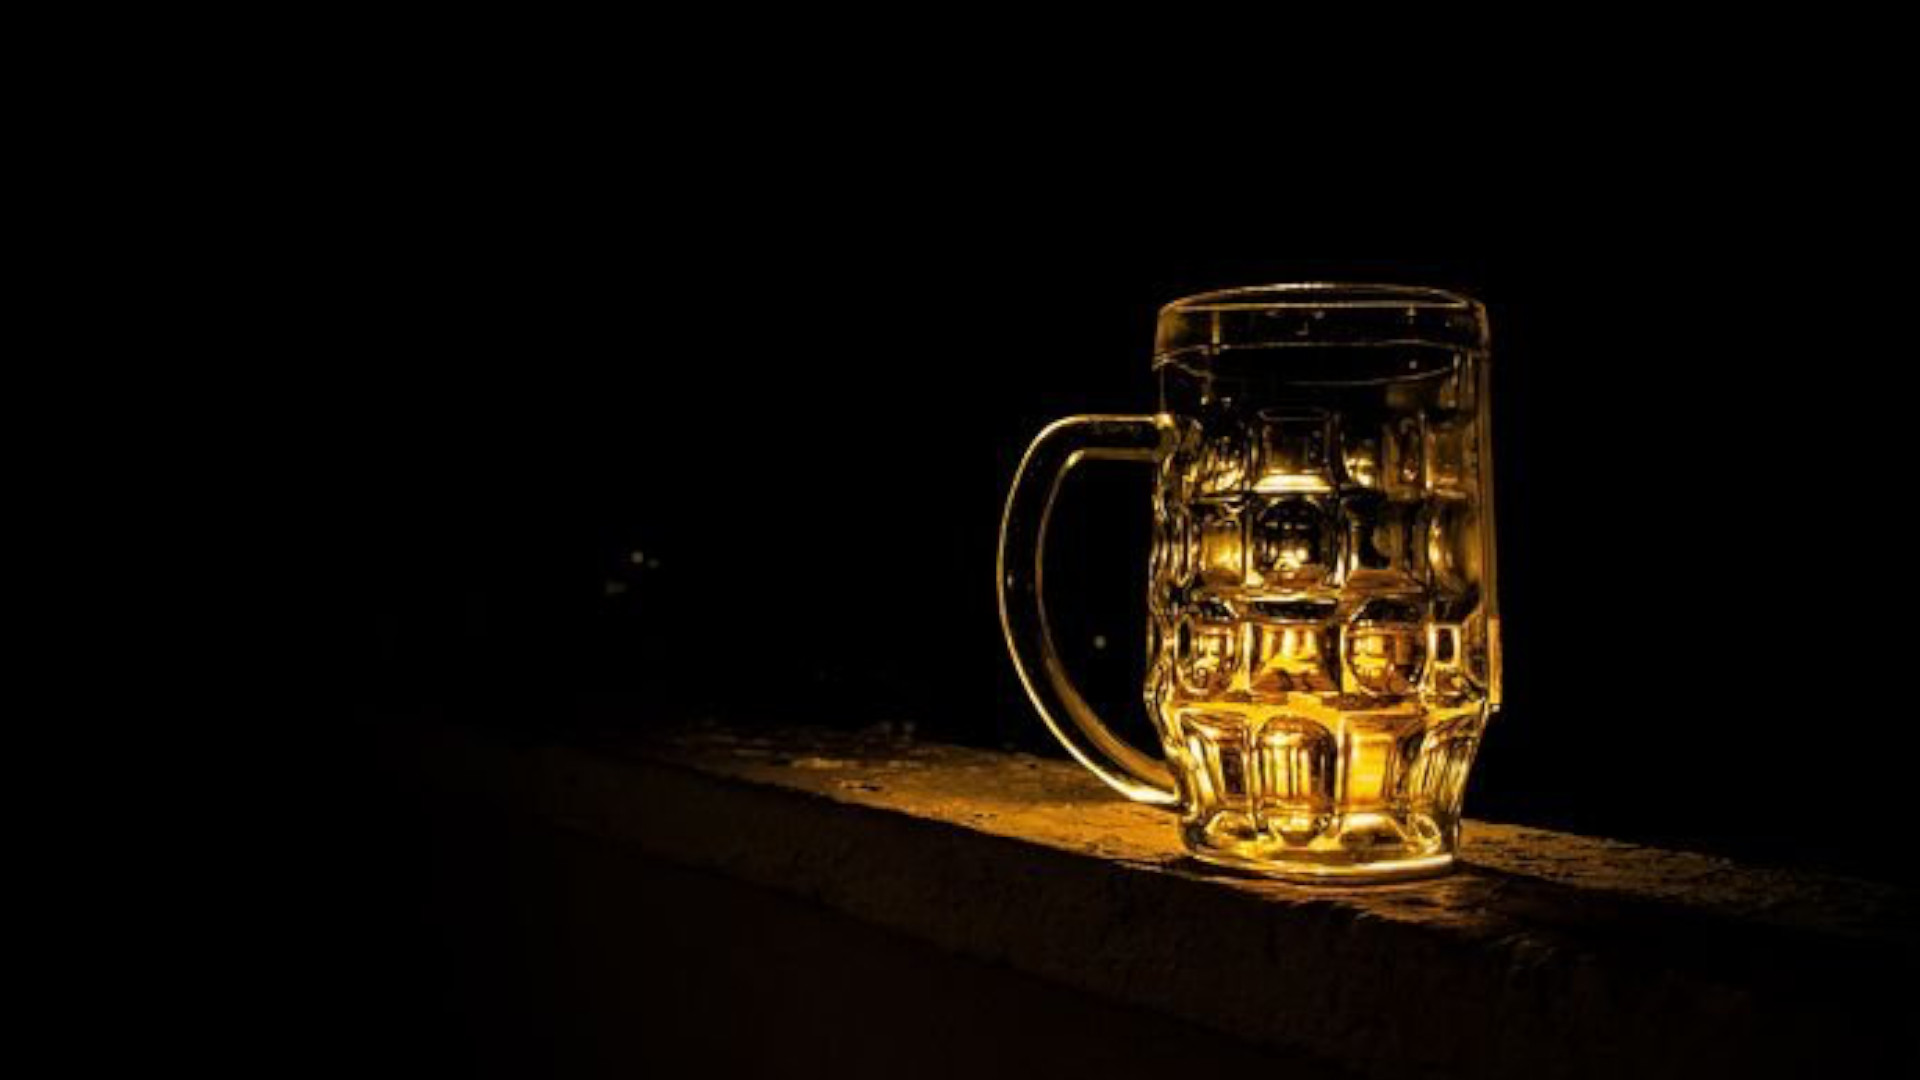 AKP bans alcohol sales to 'curb pandemic'